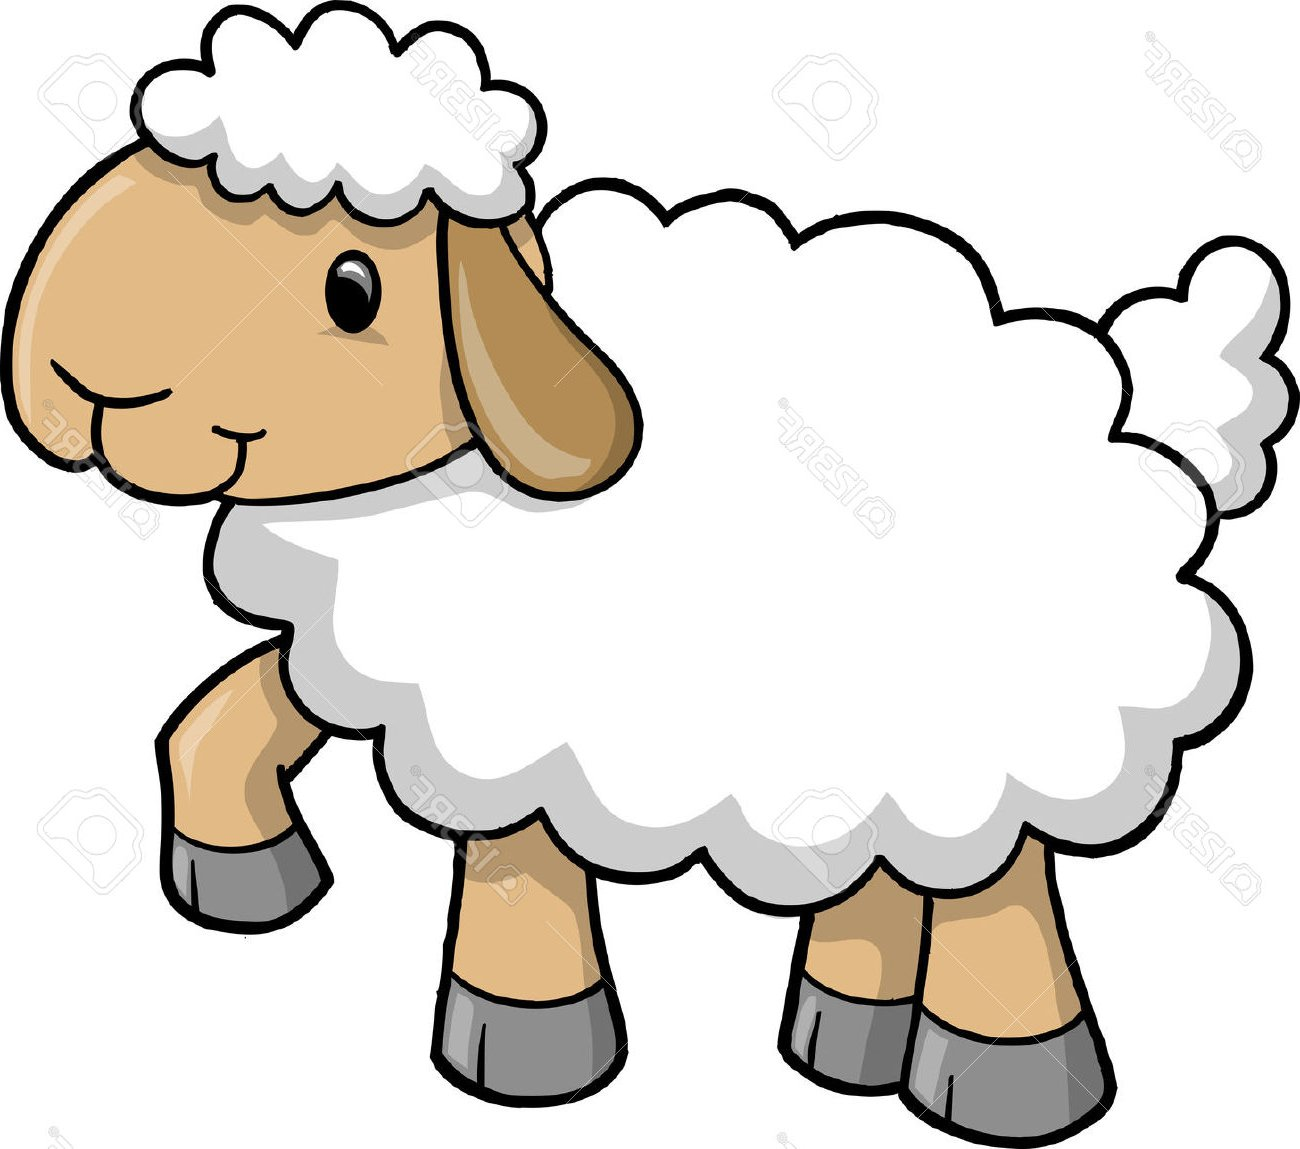 Lamb clipart animated, Lamb animated Transparent FREE for download.